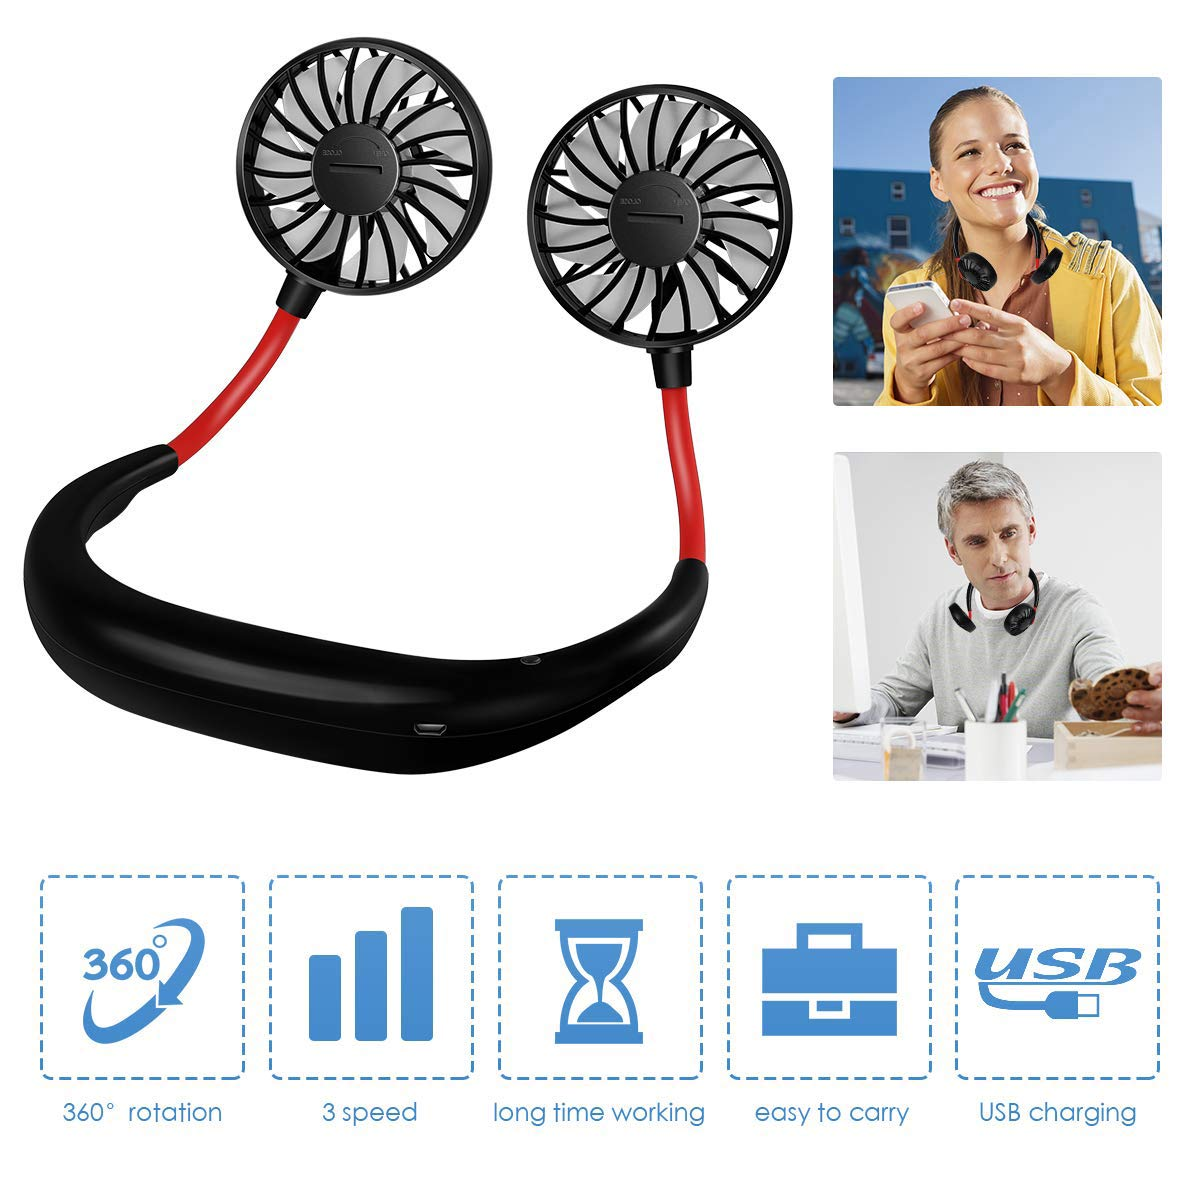 Letlar Hand Free Personal Fan Portable USB Battery Rechargeable Mini Fan Neckband Fans Adjustment Desktop Wearable Cooler Fans for Traveling Camping BBQ Gym Outdoor Office with A Rubber by Letlar